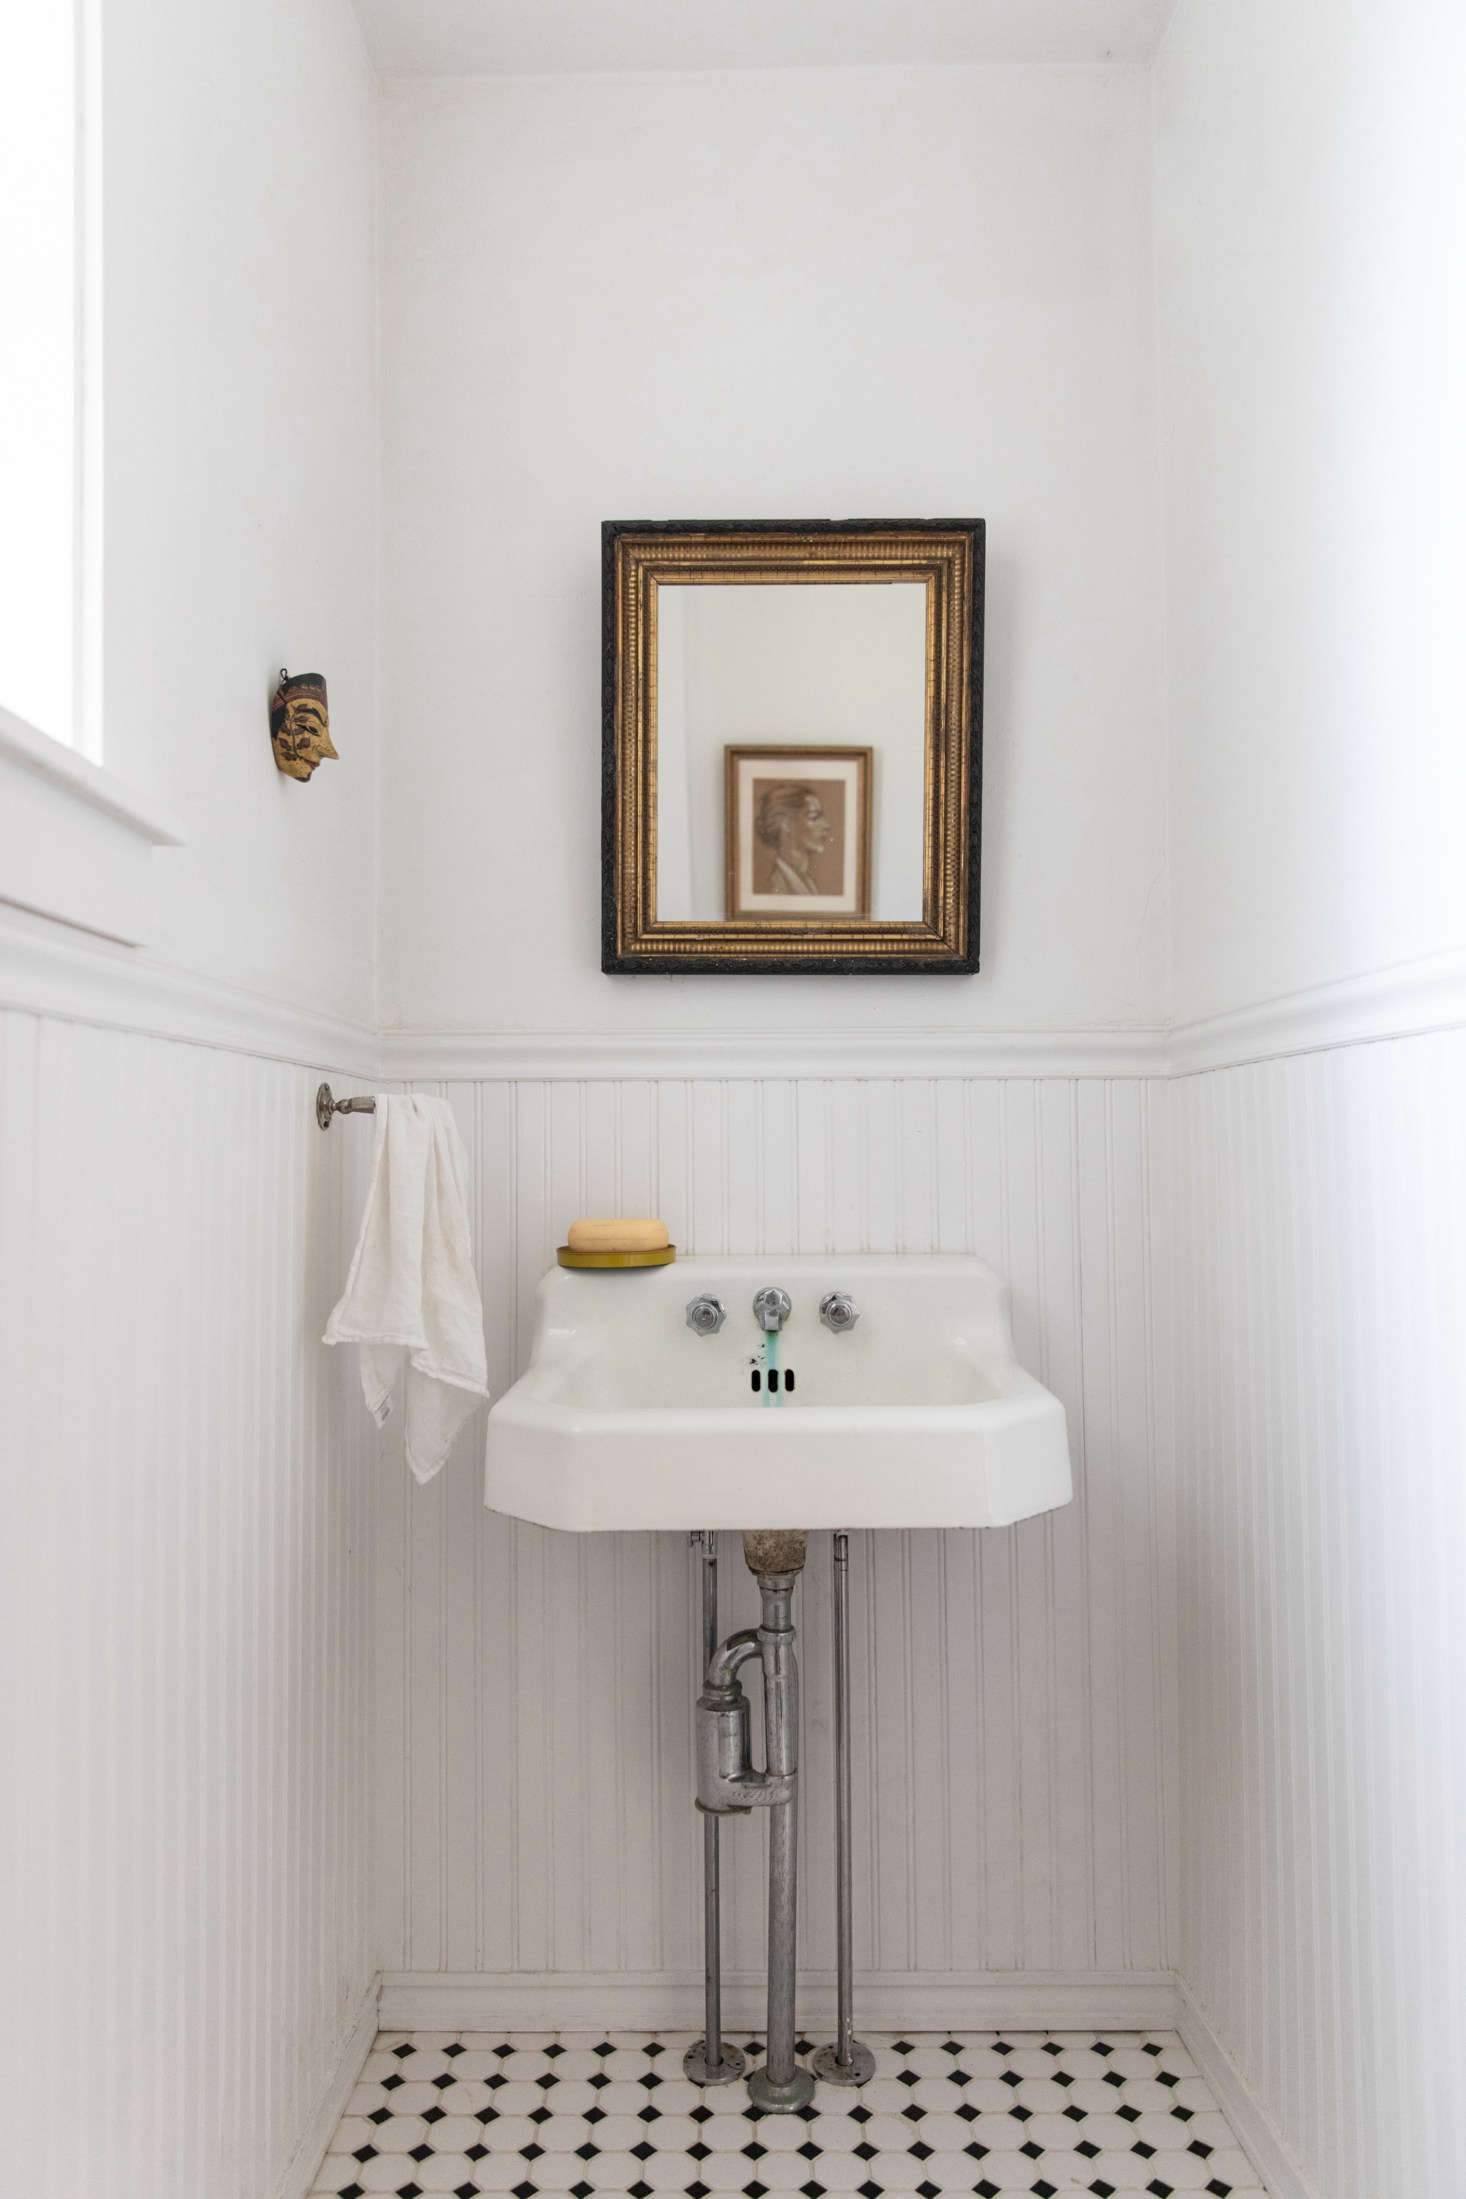 """One of two bathrooms, with beadboard wainscoting and a well-loved sink. """"The mask is Balinese, brought back by a friend—it oddly looks very much like him,"""" McNeil says. """"The portrait I loved because she's so determined and yet so beautiful. It's a pastel from the 1950s, found in an antique store in Camden."""" The antique gold-and-black mirror is from a shop in Belfast."""